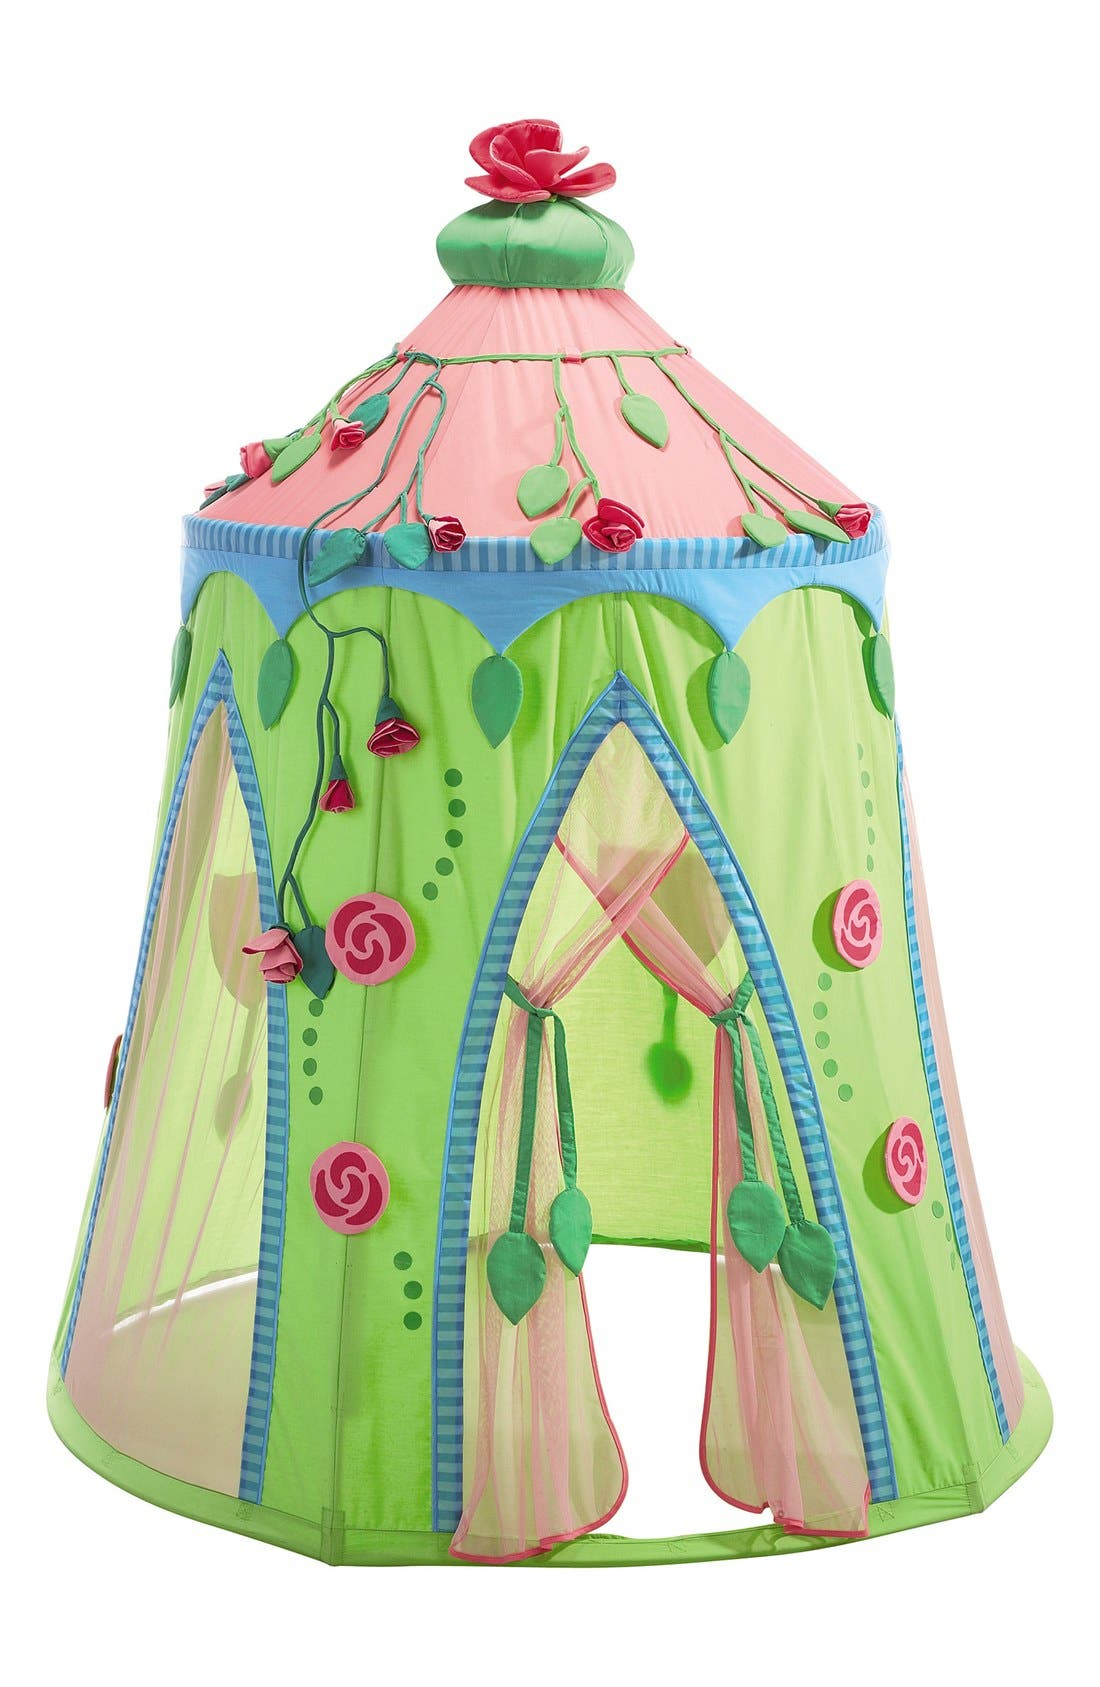 'Rose Fairy' Play Tent,                             Main thumbnail 1, color,                             Pink